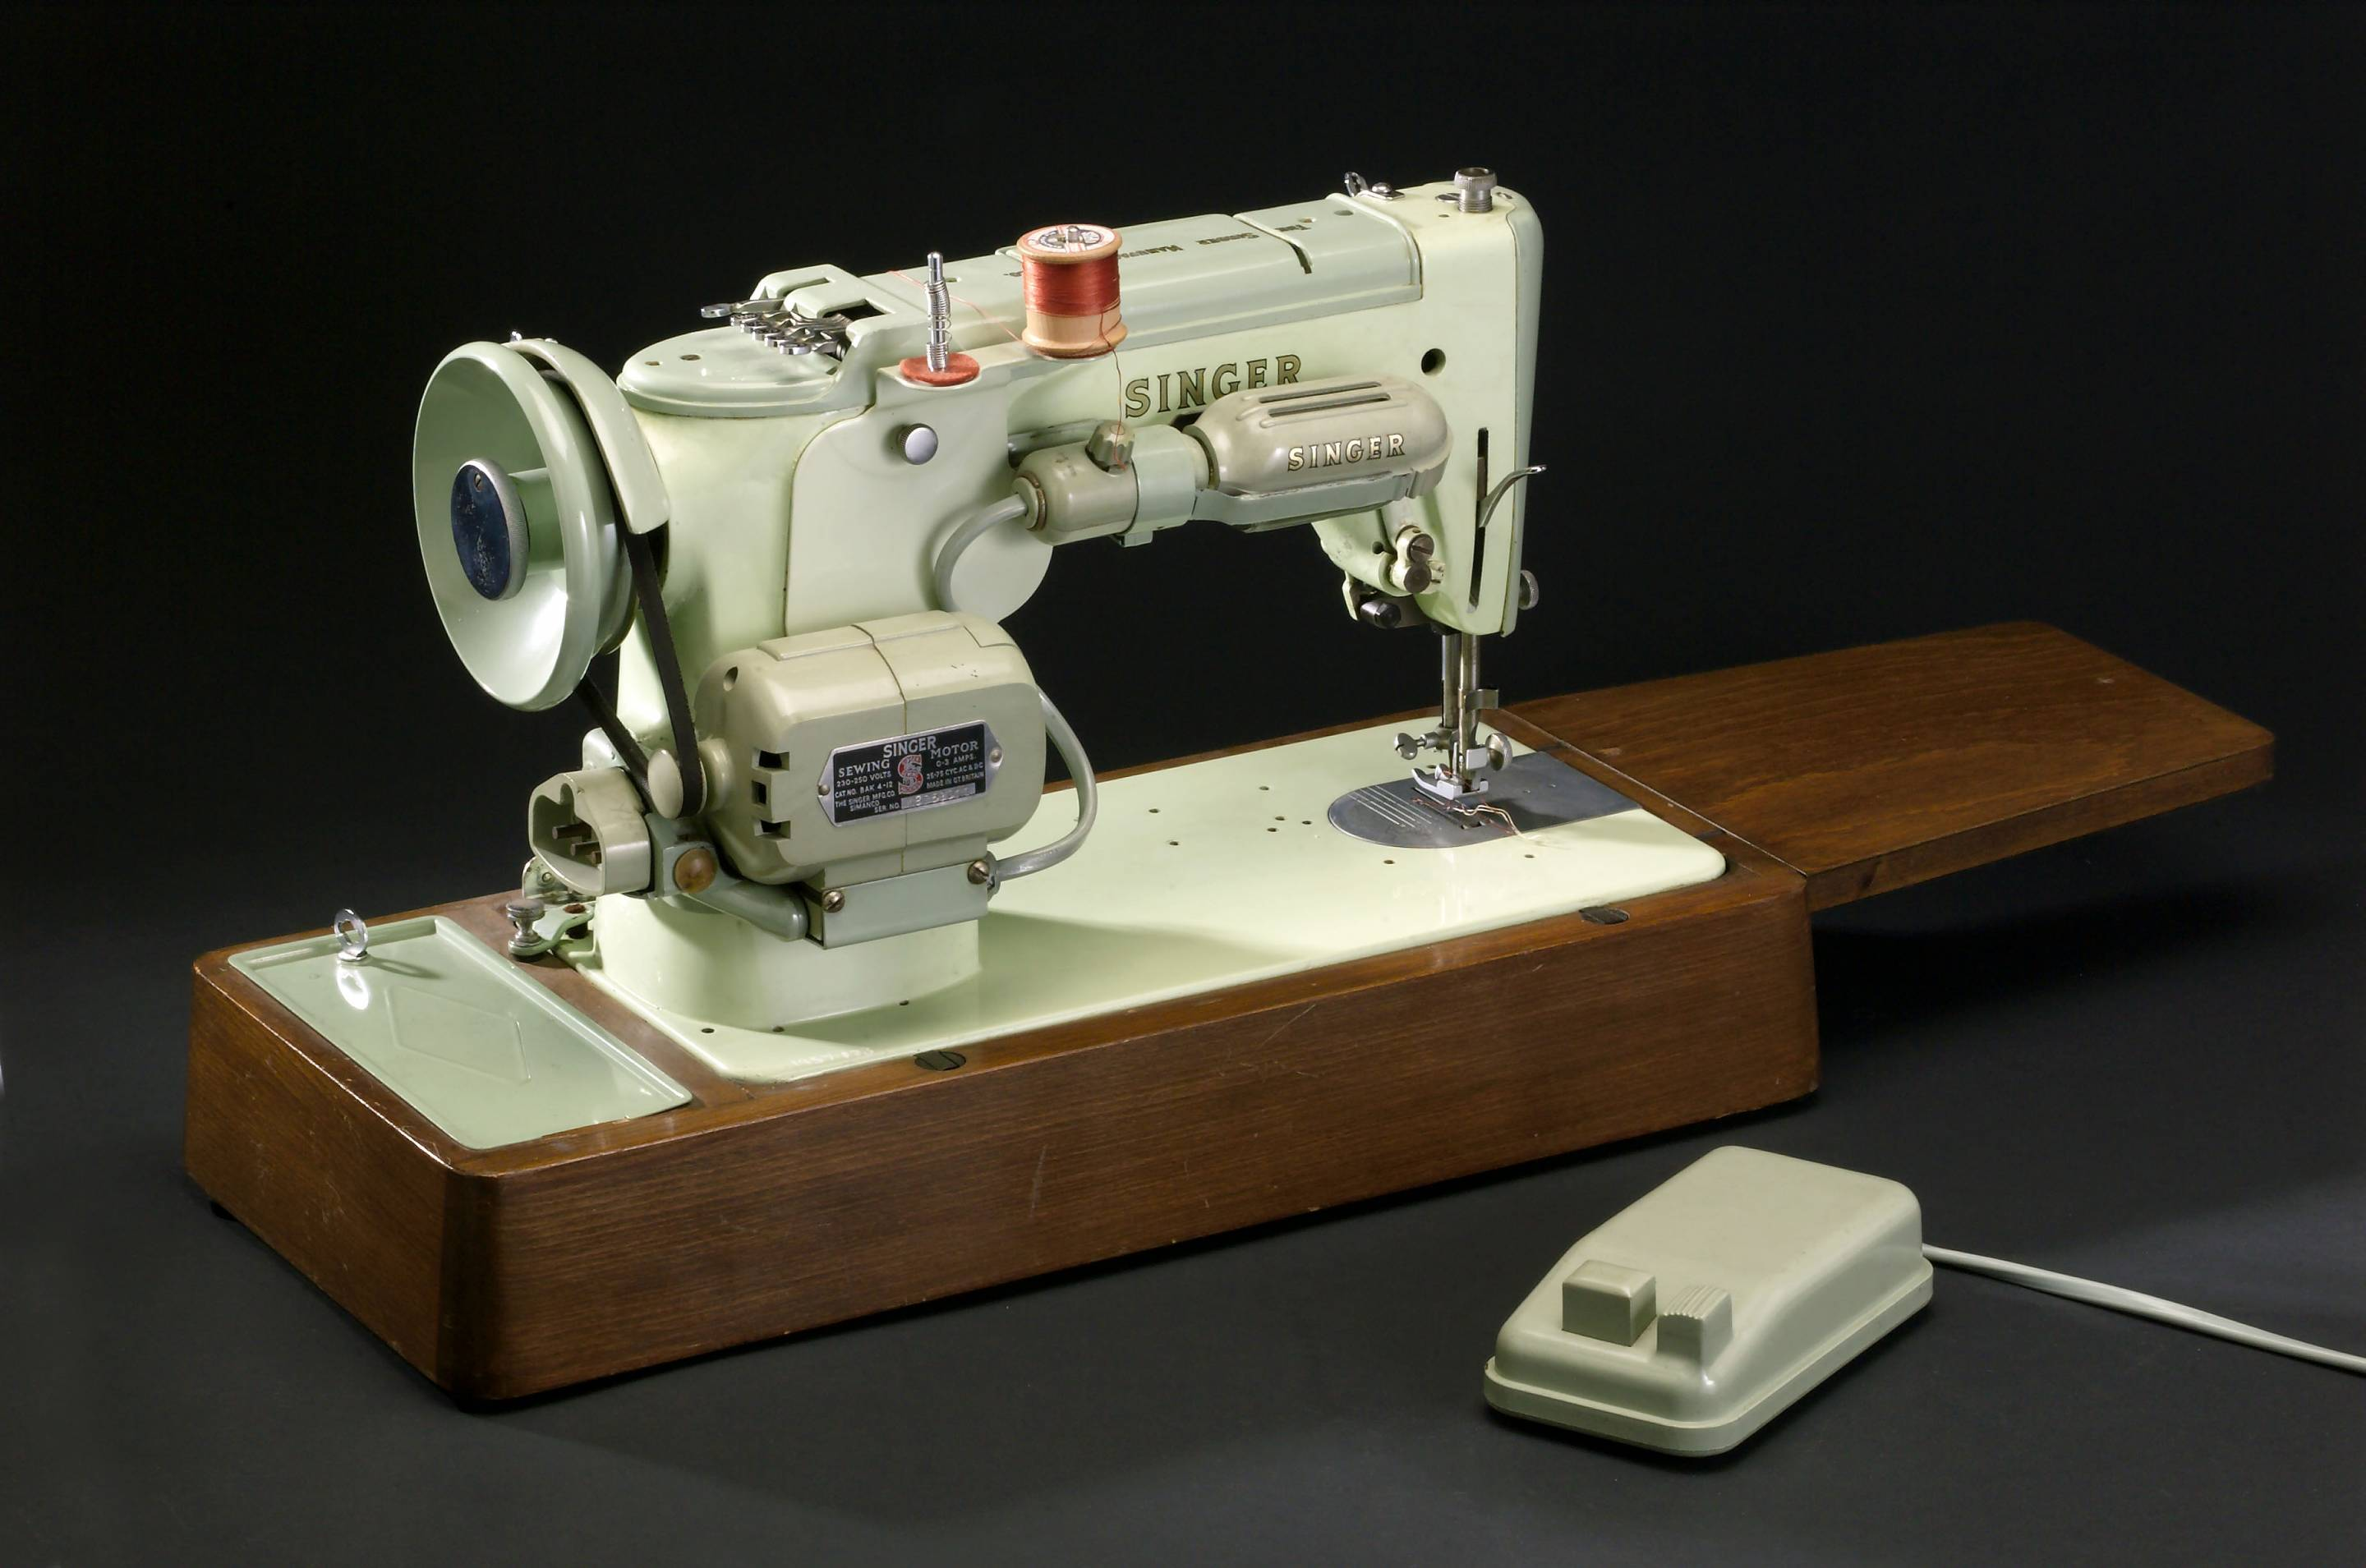 Isaac Merritt Singer designed the first practical lock-stitch sewing machine in Boston in 1850.